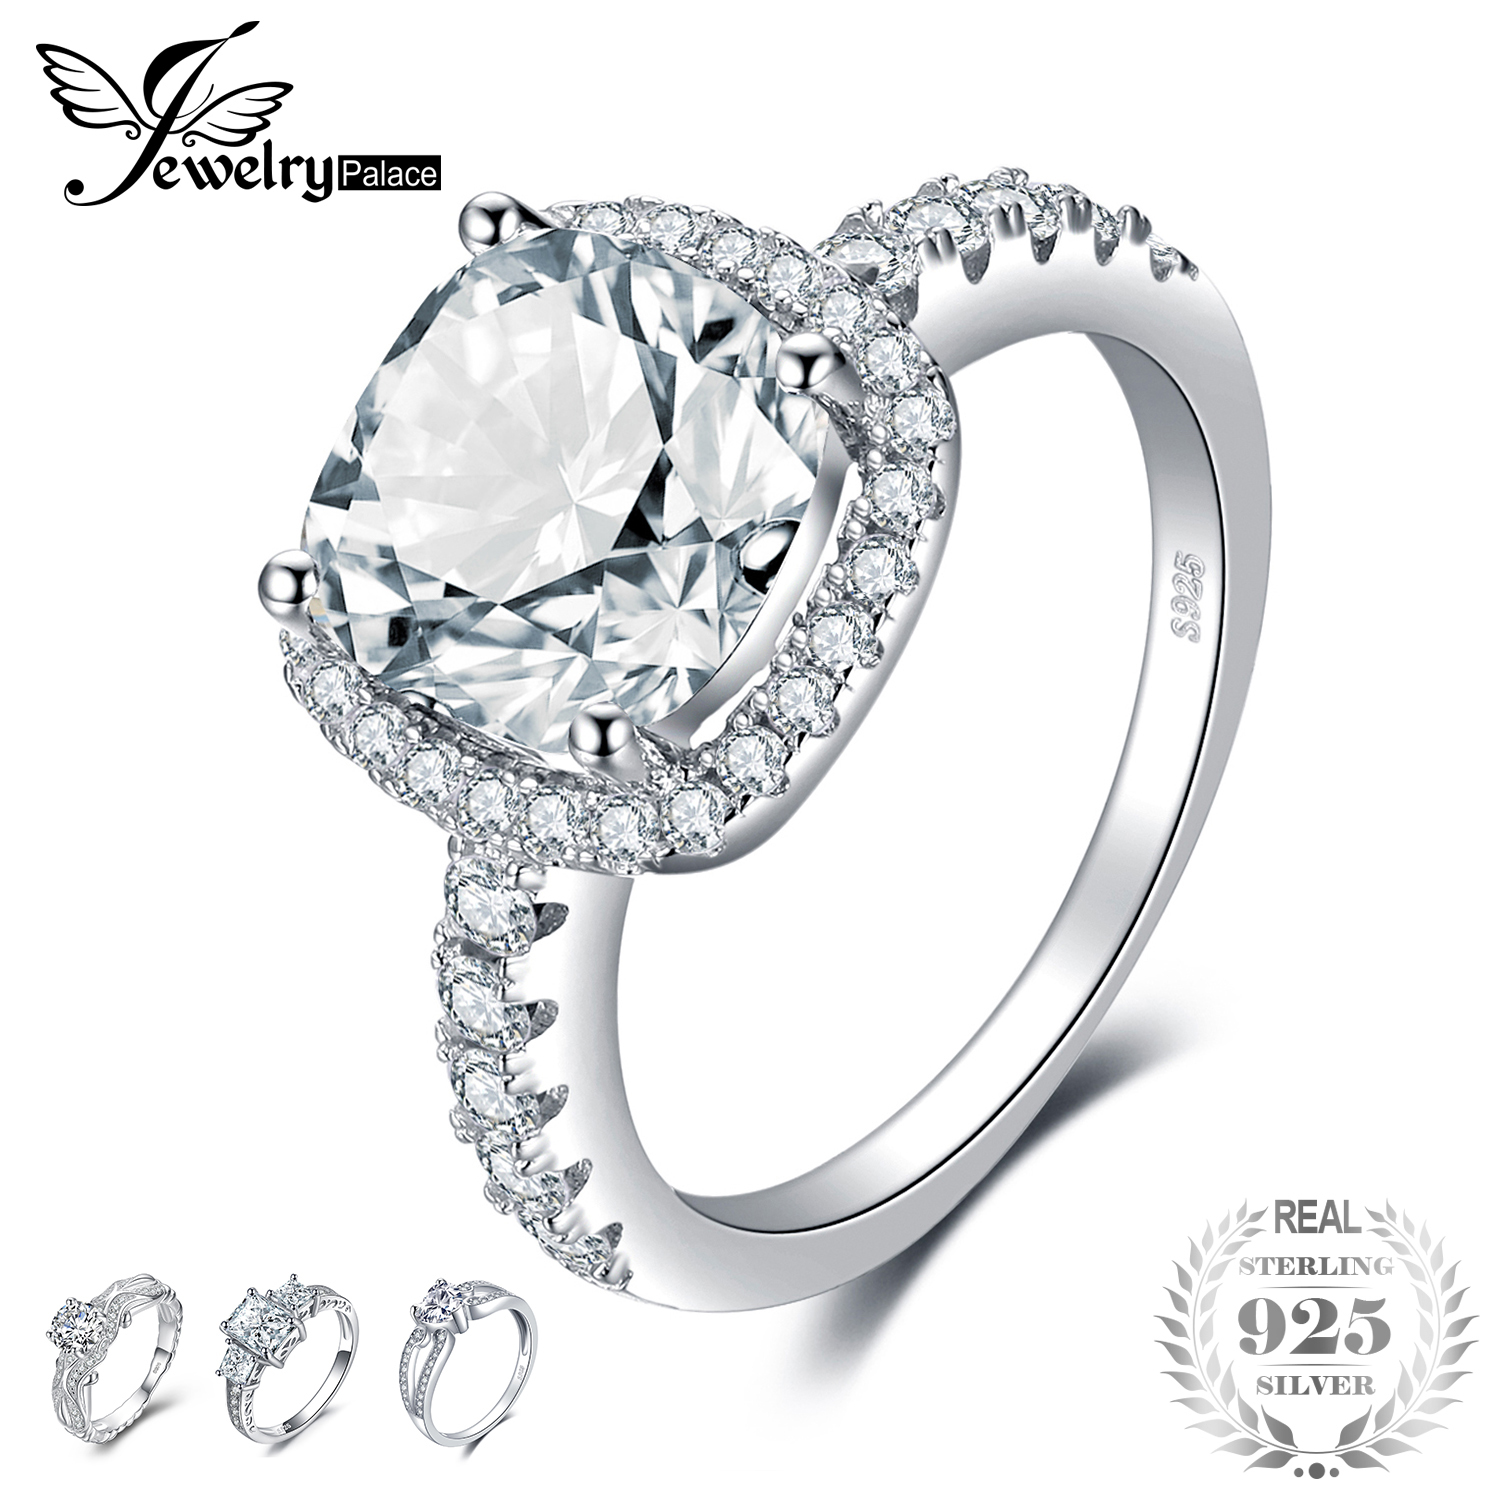 JewelryPalace Cushion 3ct Wedding Halo Solitaire Engagement Ring 925 Sterling Silver Ring for  Wedding Jewelry 2018 New HotJewelryPalace Cushion 3ct Wedding Halo Solitaire Engagement Ring 925 Sterling Silver Ring for  Wedding Jewelry 2018 New Hot